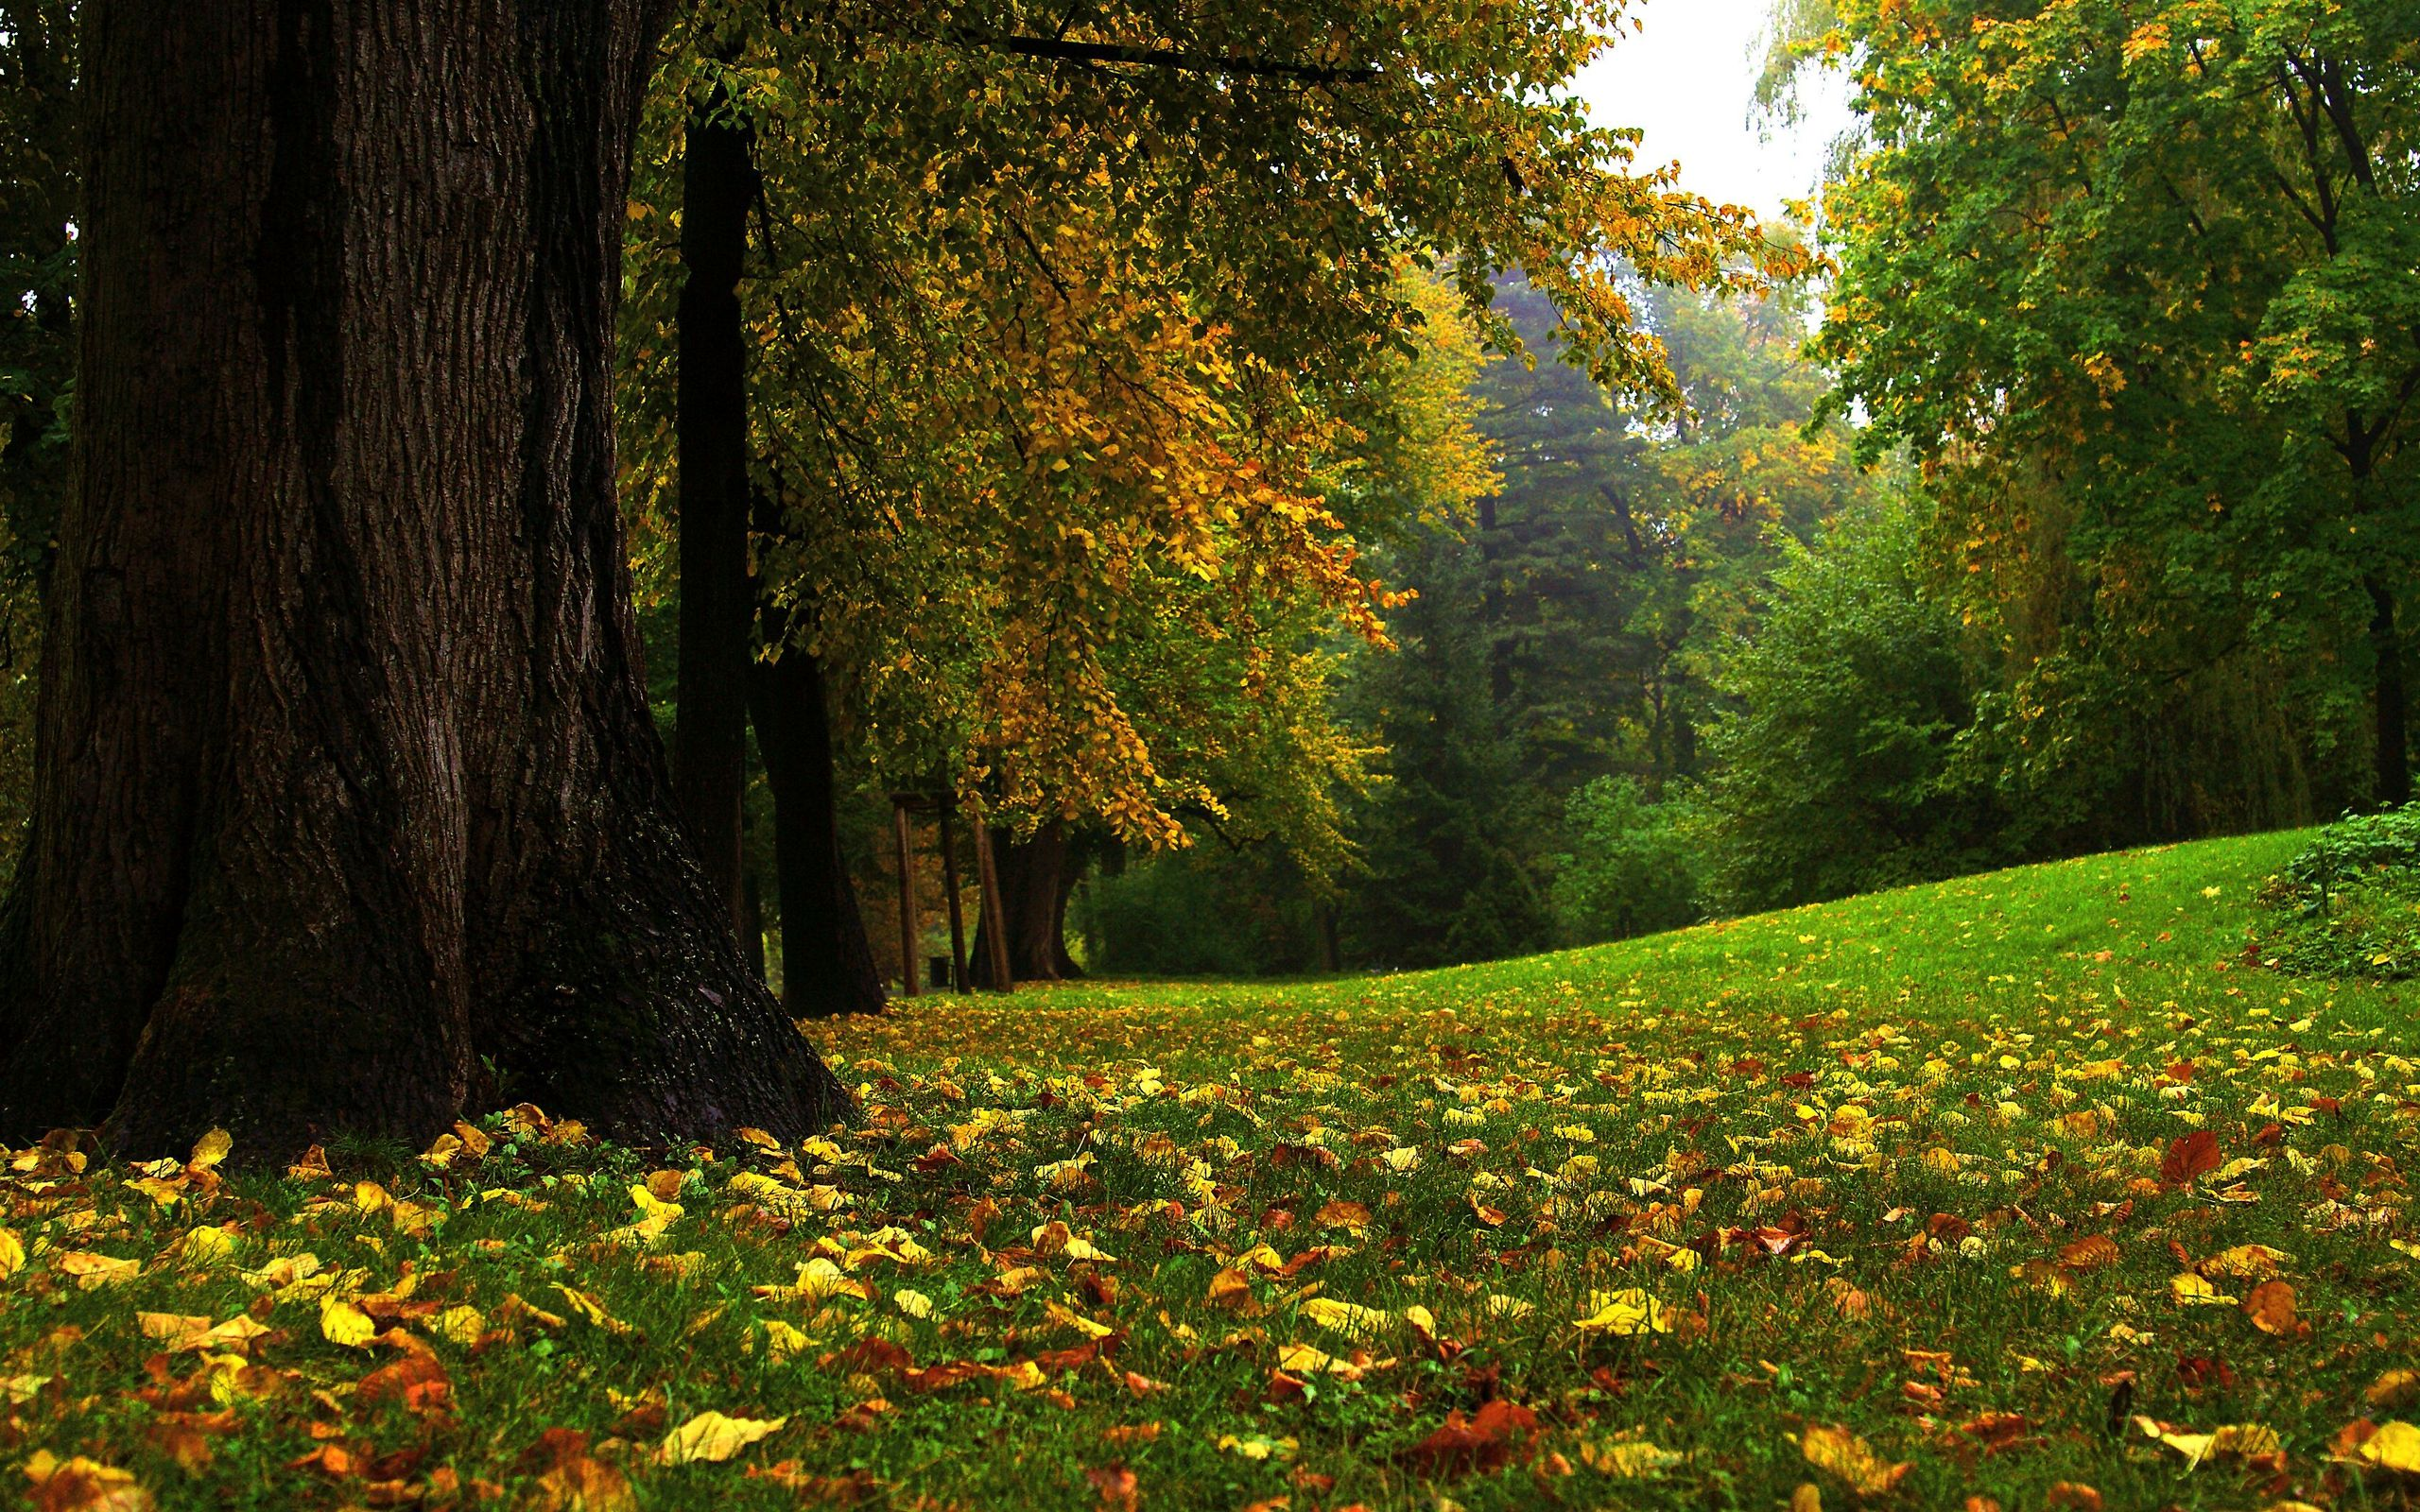 forest full hd wallpaper and background image | 2560x1600 | id:122408